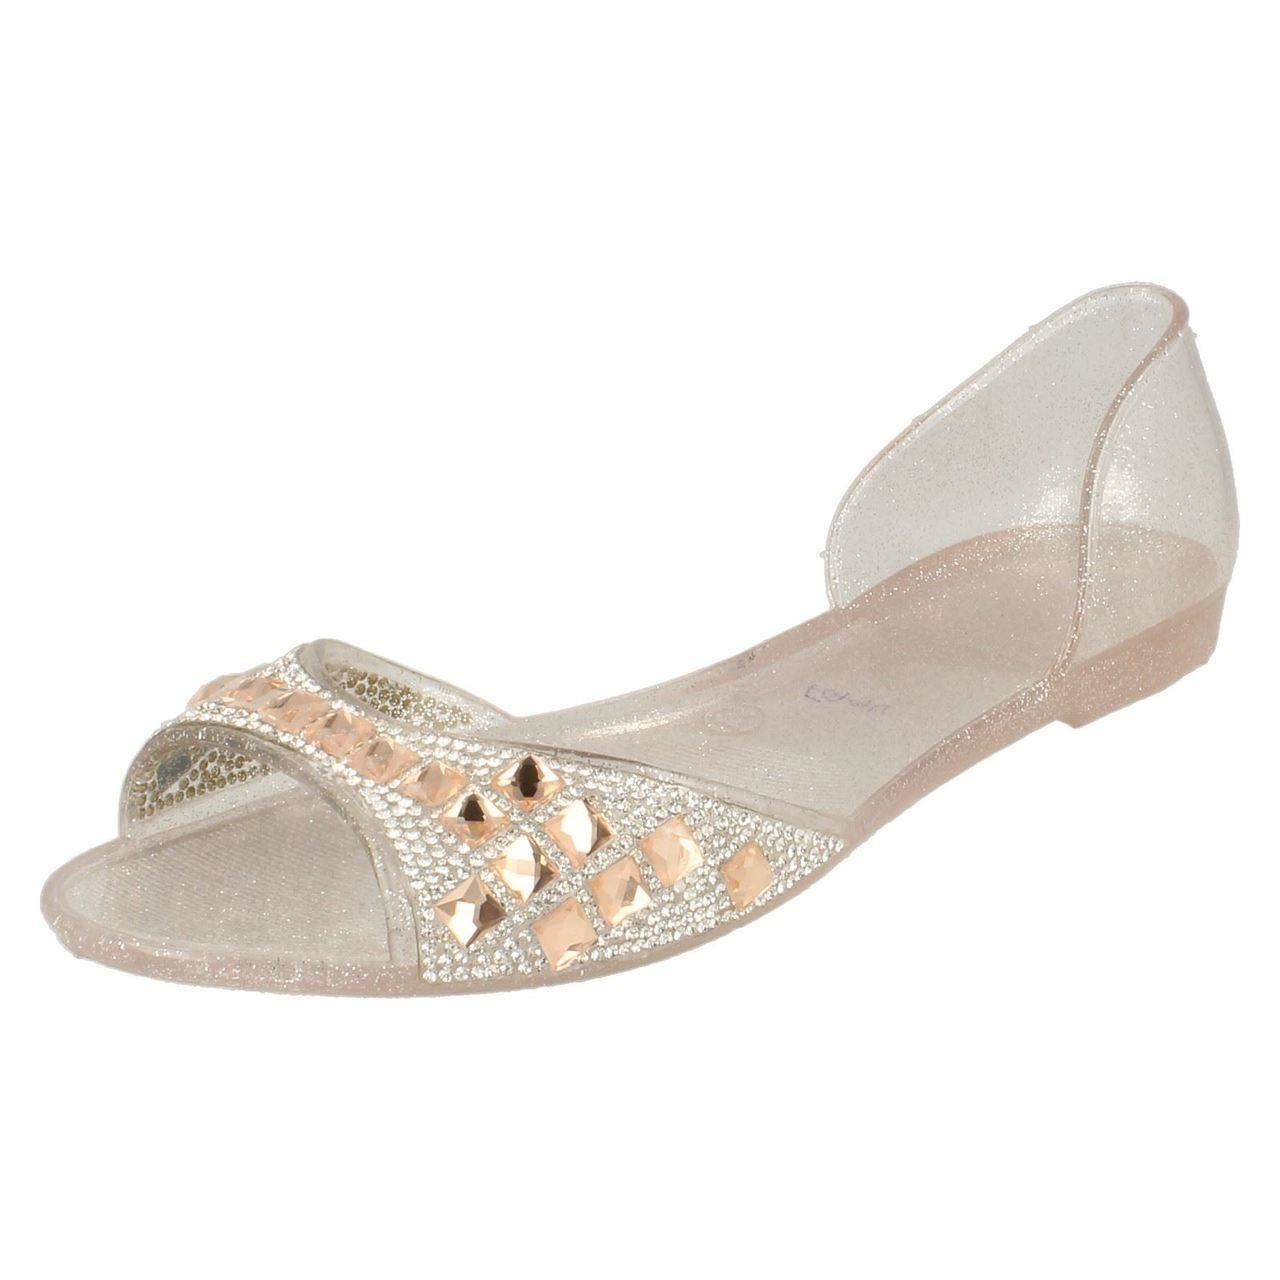 757574076e1c3 Spot on Ladies Open Toe Flat Ballerina Shoes With Jewelled Detailing ...